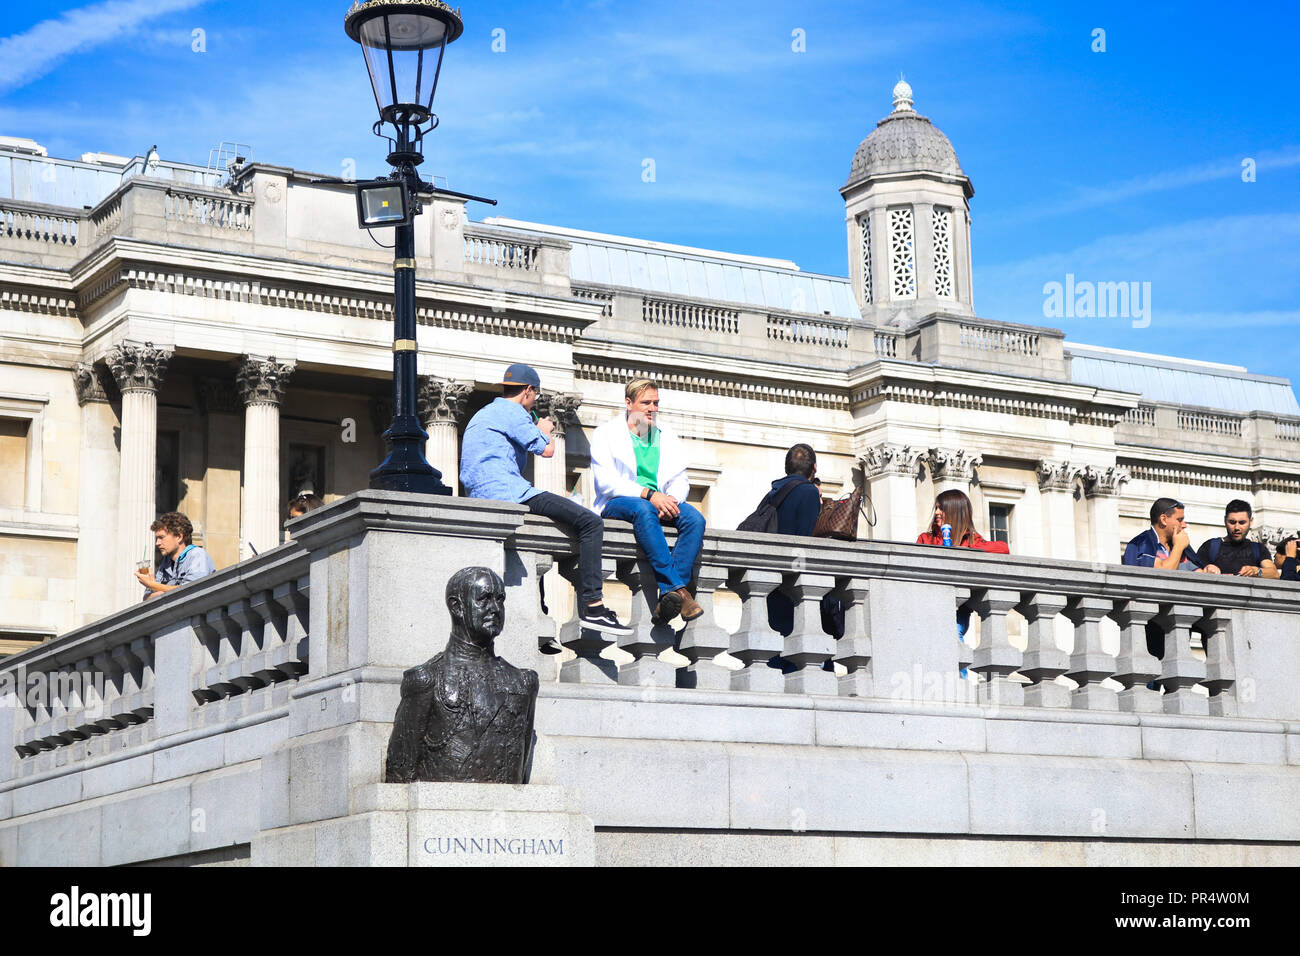 London, UK. 29th Sep, 2018. Tourists and sightseeers enjoy the beautiful autumn sunshine in Trafalgar Square on a warm day in the capital Credit: amer ghazzal/Alamy Live News Stock Photo